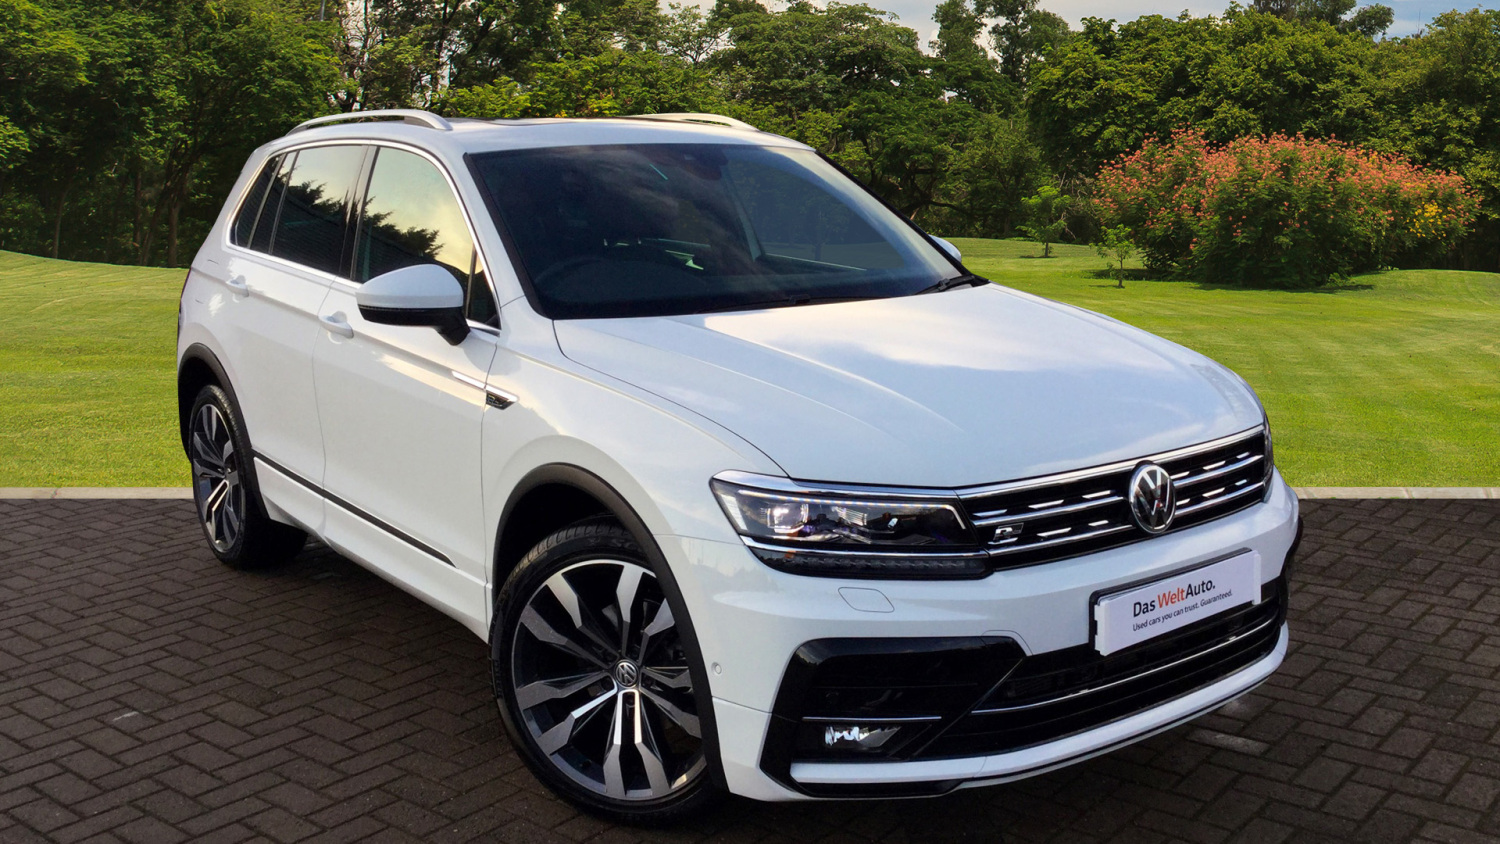 Used Volkswagen Tiguan 2 0 Tdi Bmt 150 4motion R Line 5dr